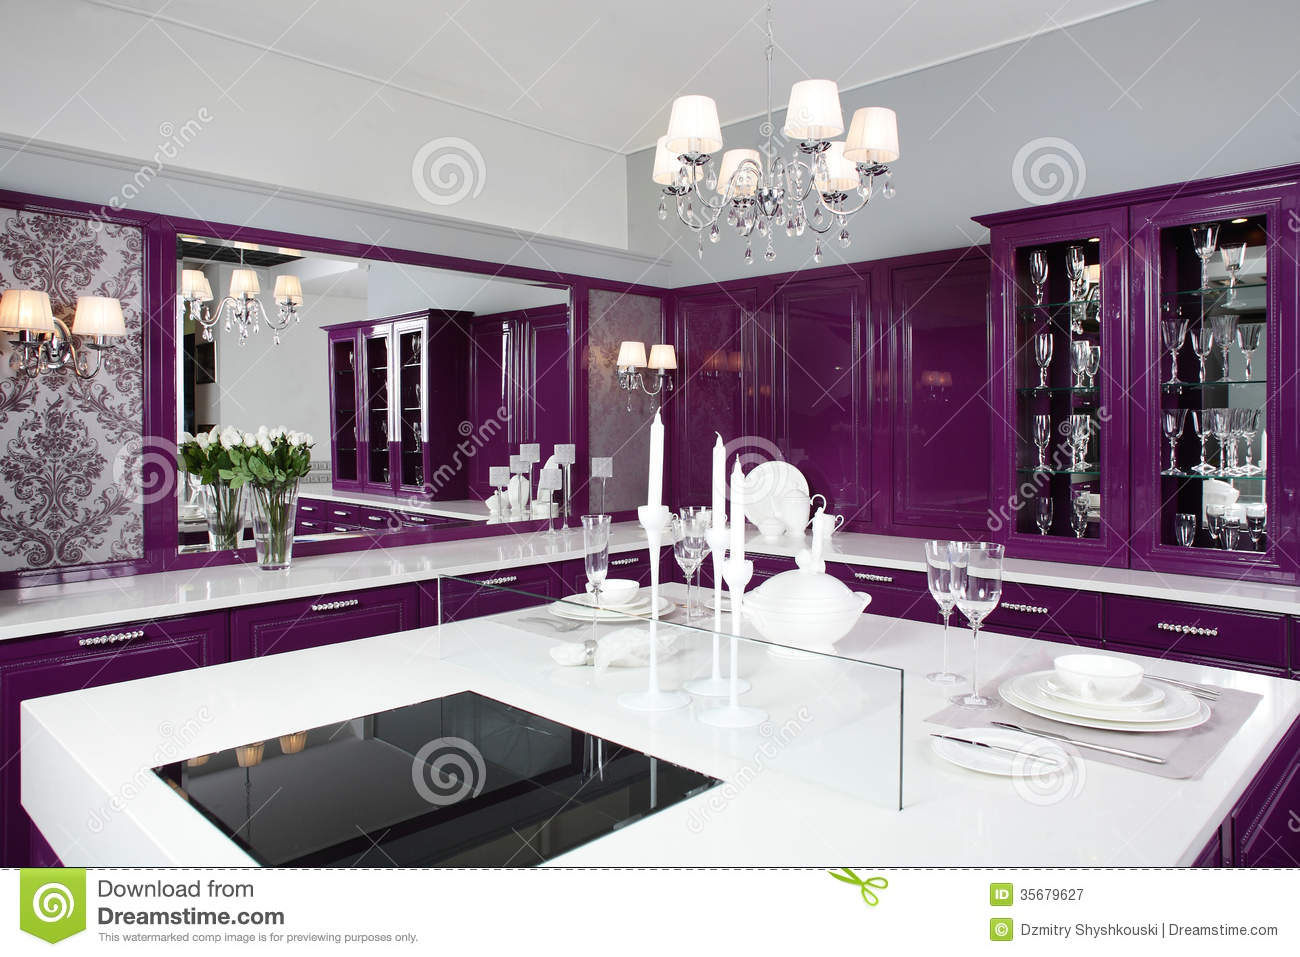 Modern purple kitchen with stylish furniture royalty free stock photography image 35679627 - Furnitur photos ...